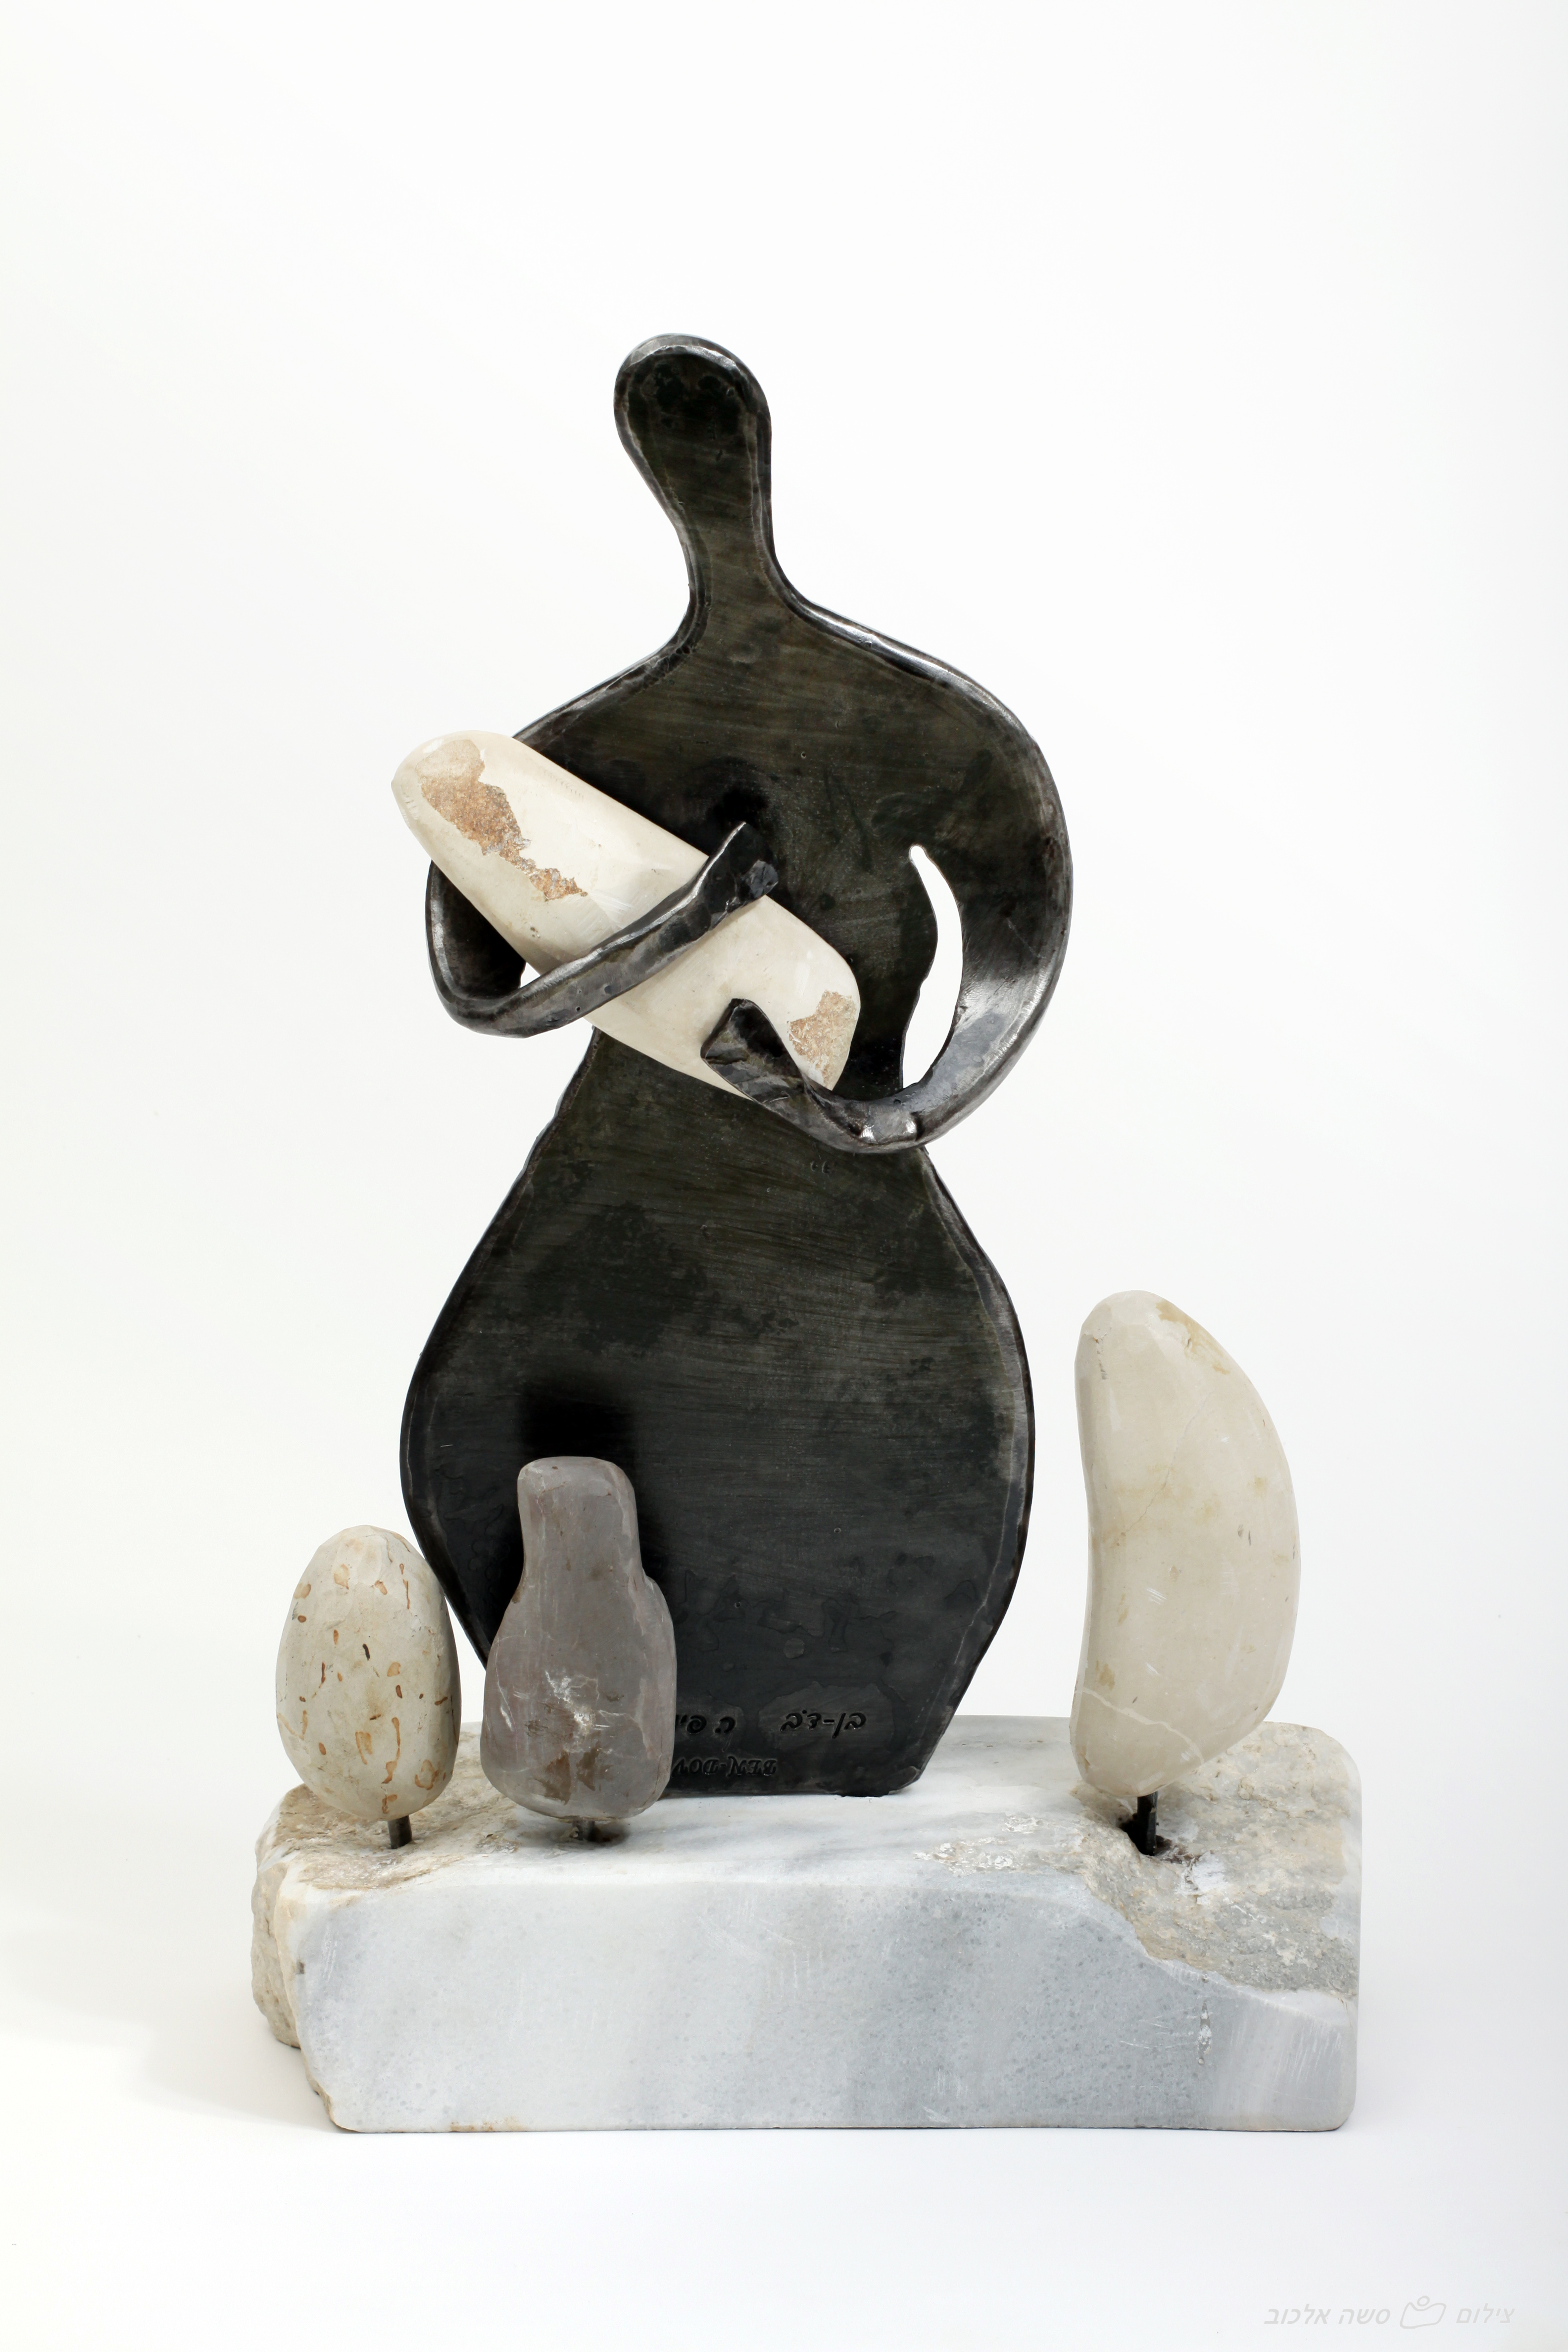 'Mother and son' - Sculpture Crafted of Forged Iron and River Stones